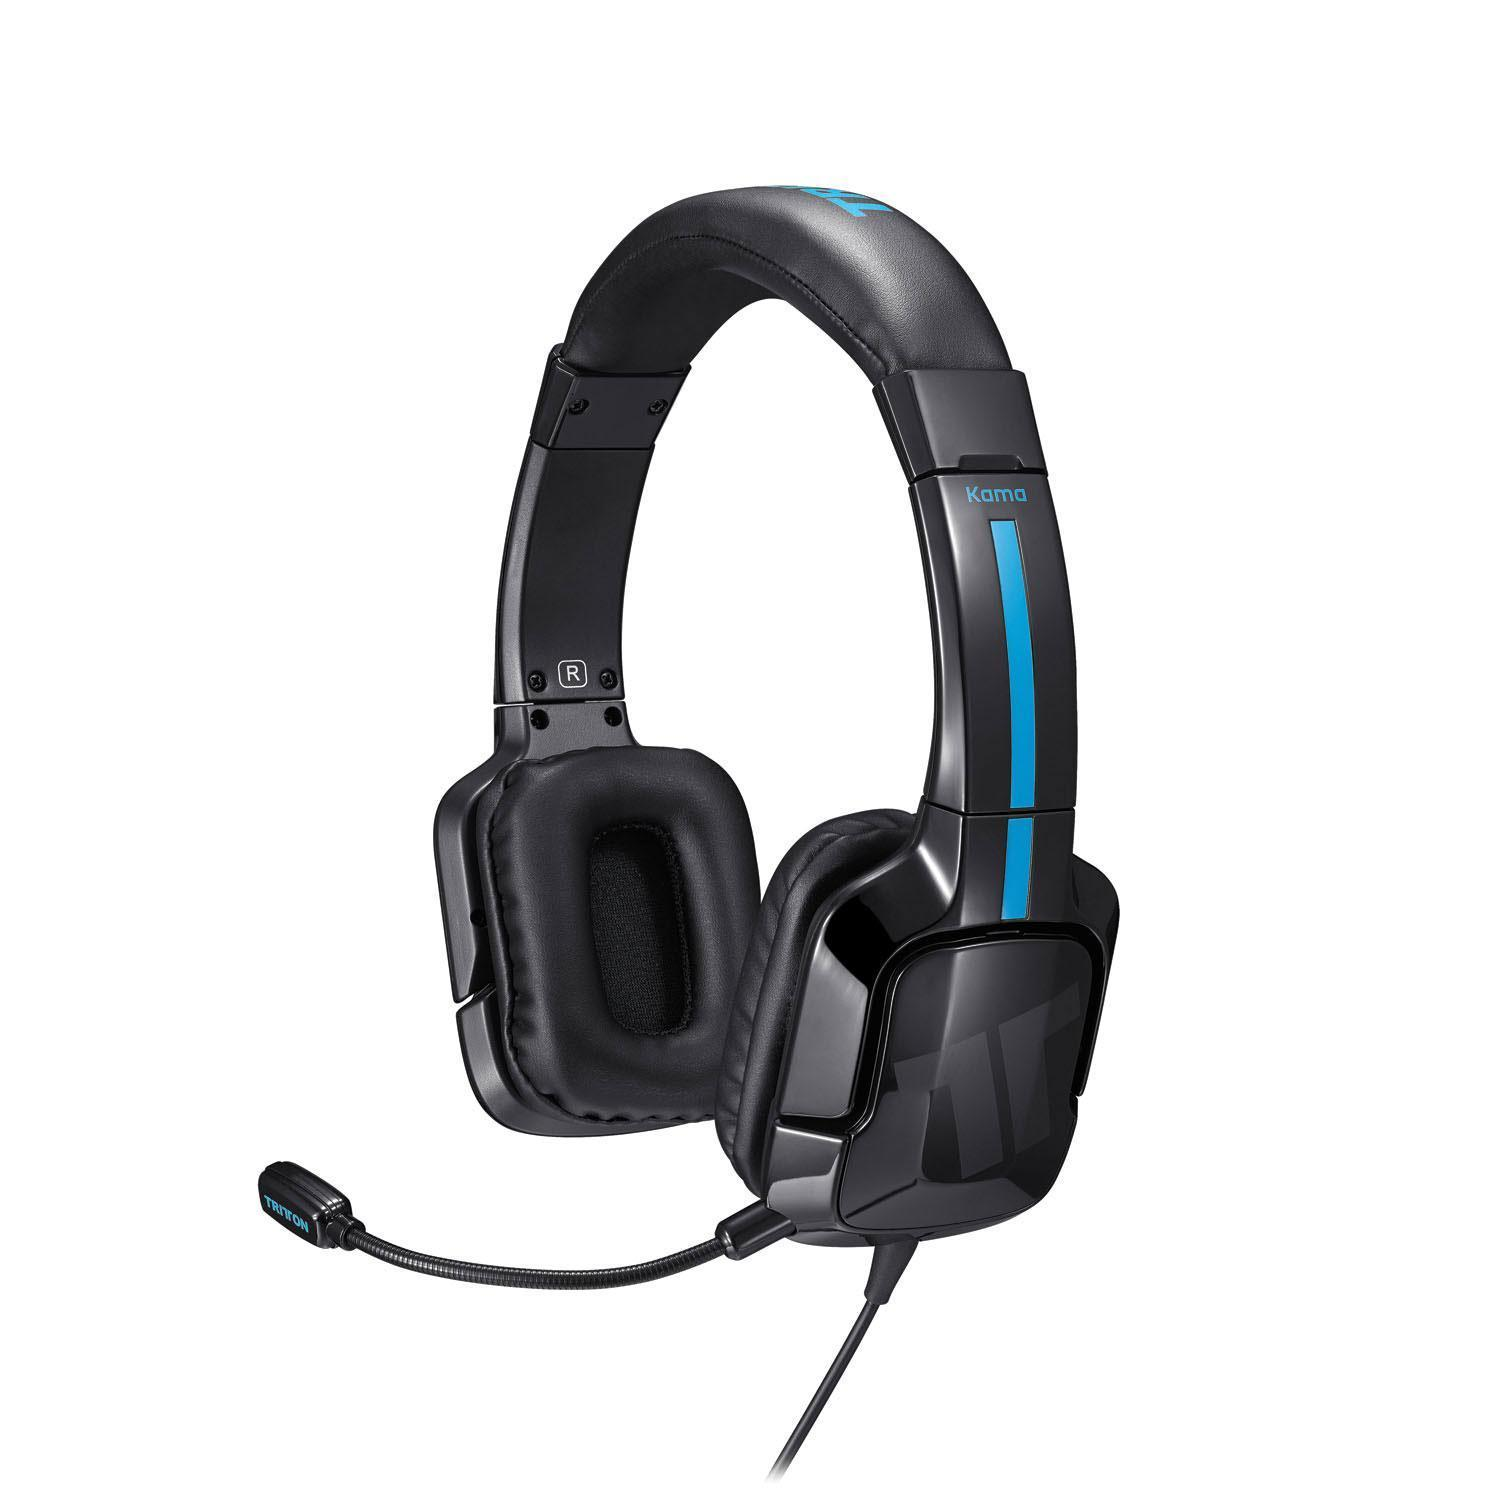 Tritton Kama Stereo Headset for PlayStation 4 / PS4 / PS Vita (Black)